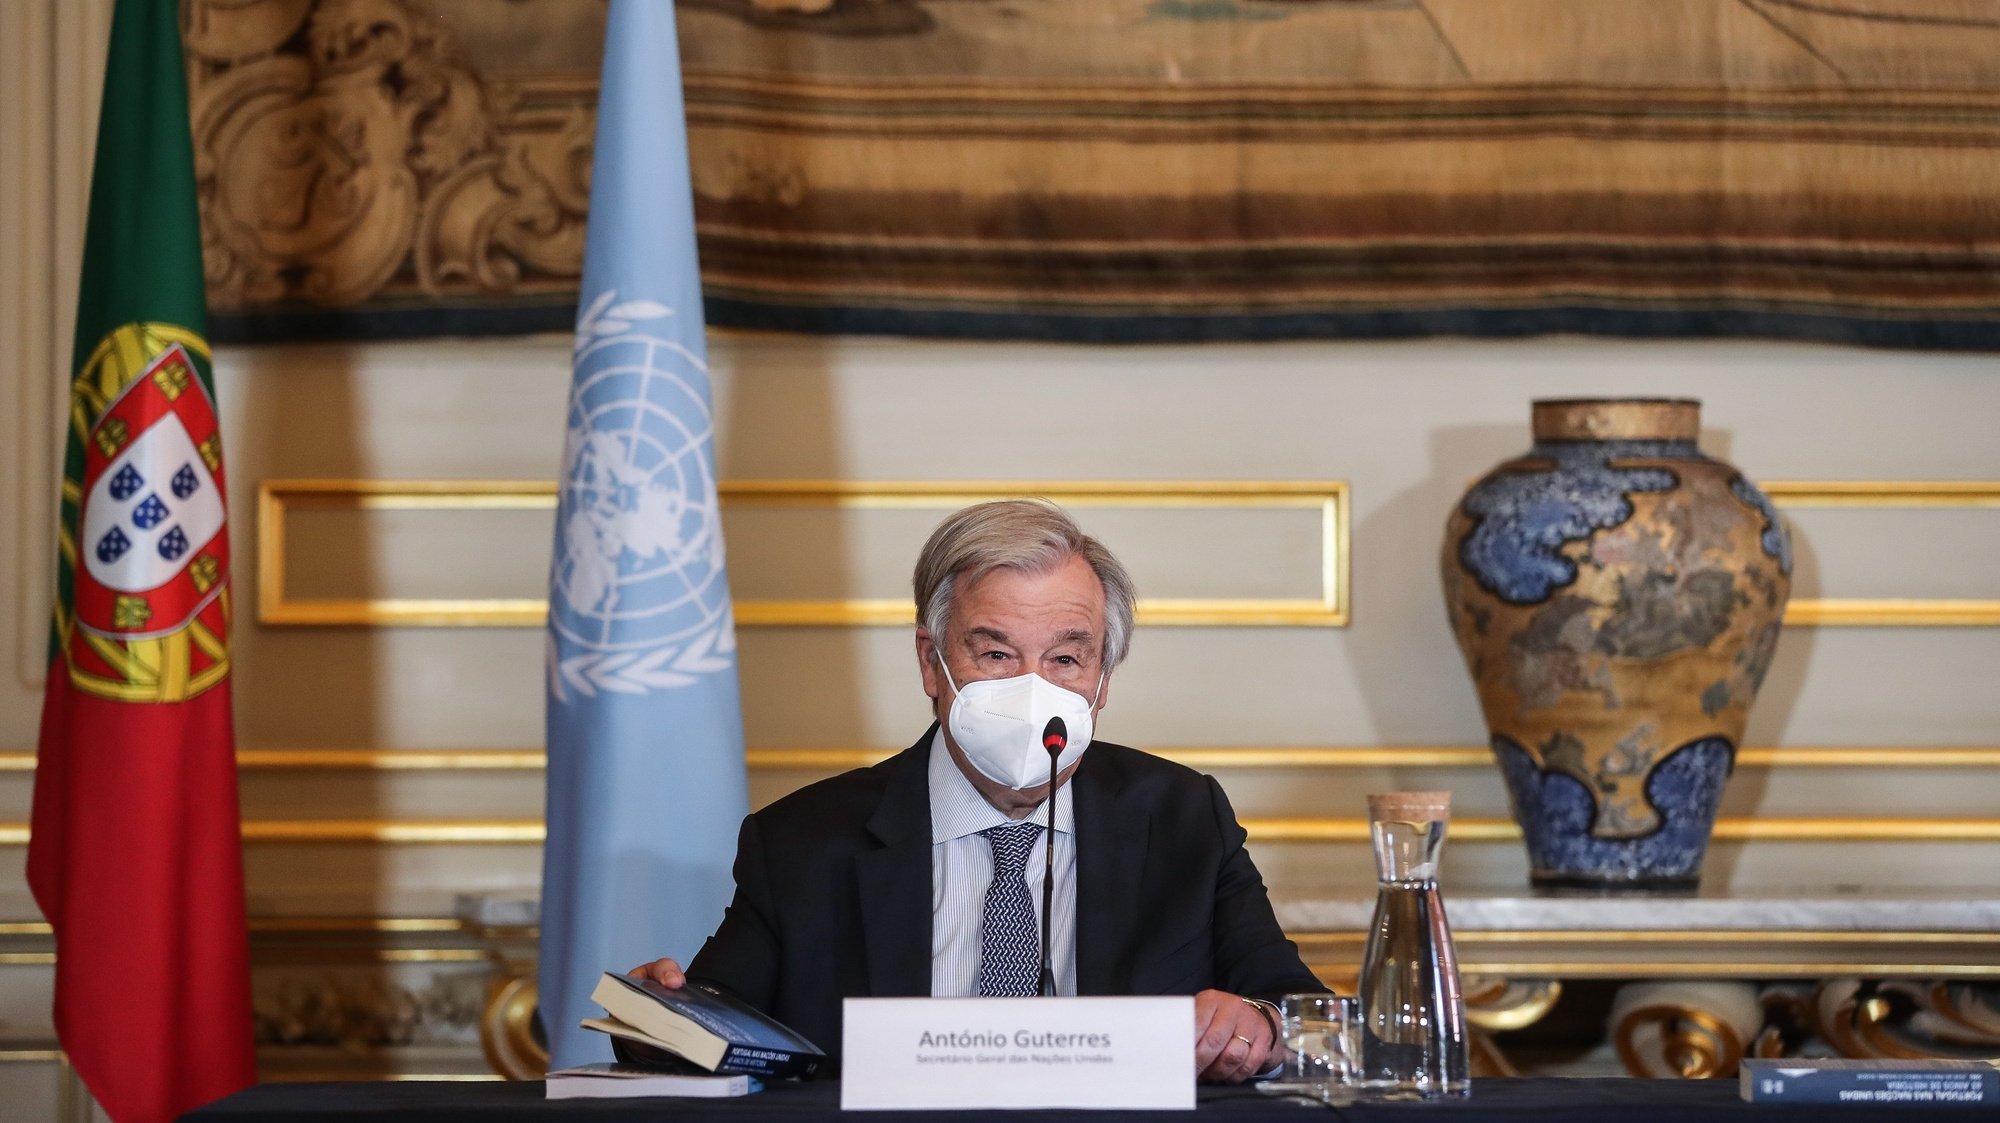 """UN Secretary-General António Guterres participates in the launch of the books """"Portugal in the UN: 65 Years of History"""" and """"Multilateral Portugal"""", at the Ministry of Foreign Affairs, Lisbon, Portugal, July 3, 2021. MARIO CRUZ/LUSA"""